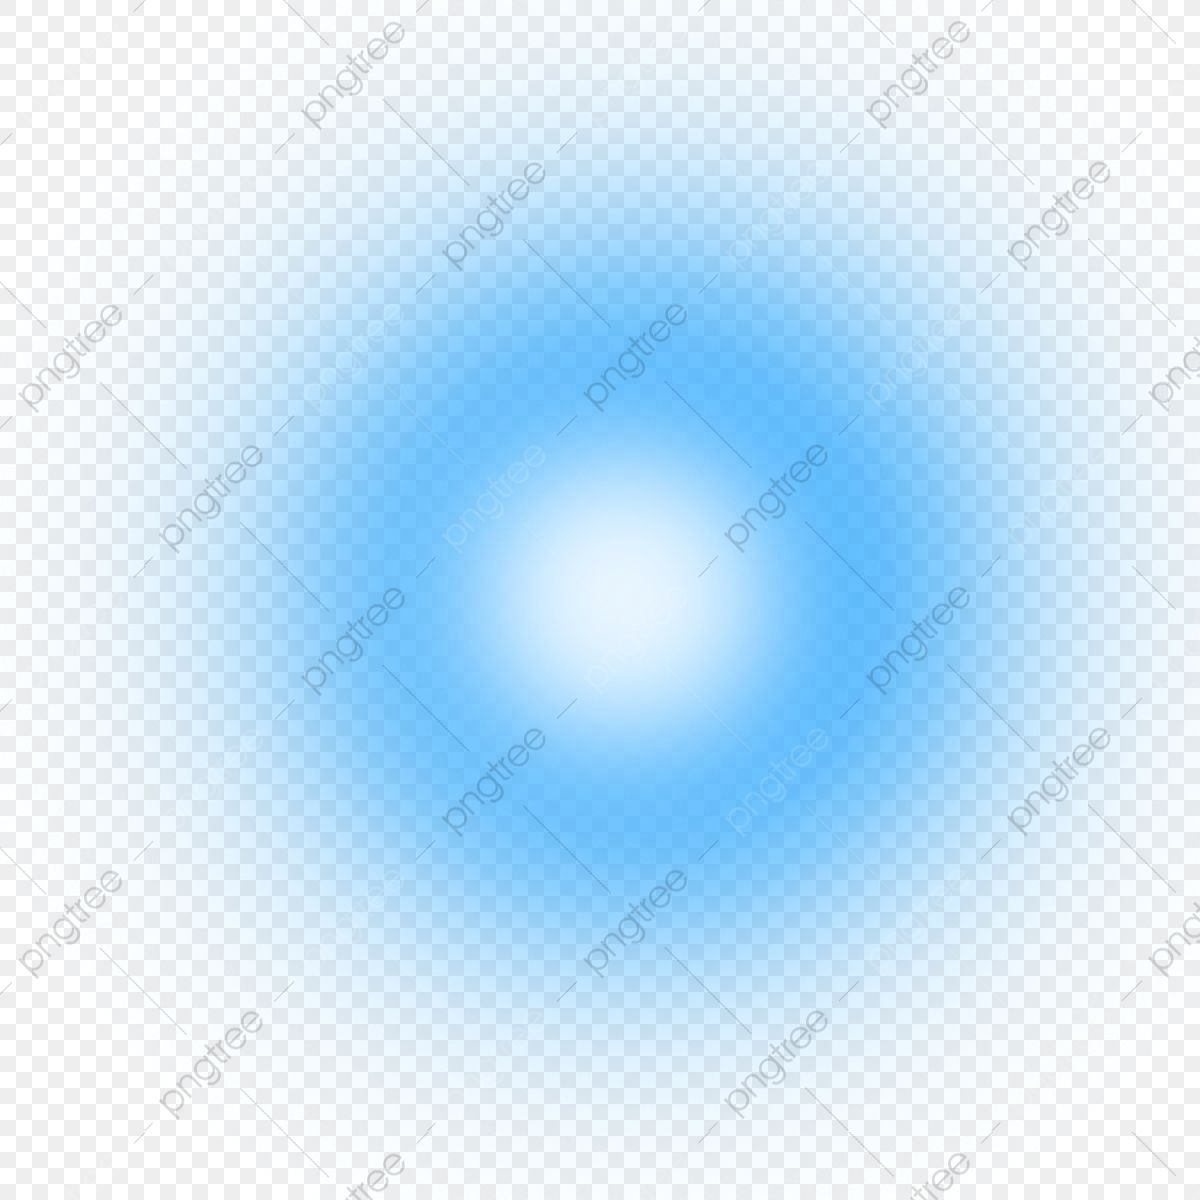 Blue Light Effect Graphic Blue Light Png Transparent Clipart Image And Psd File For Free Download Light Background Images Free Video Background Clipart Images